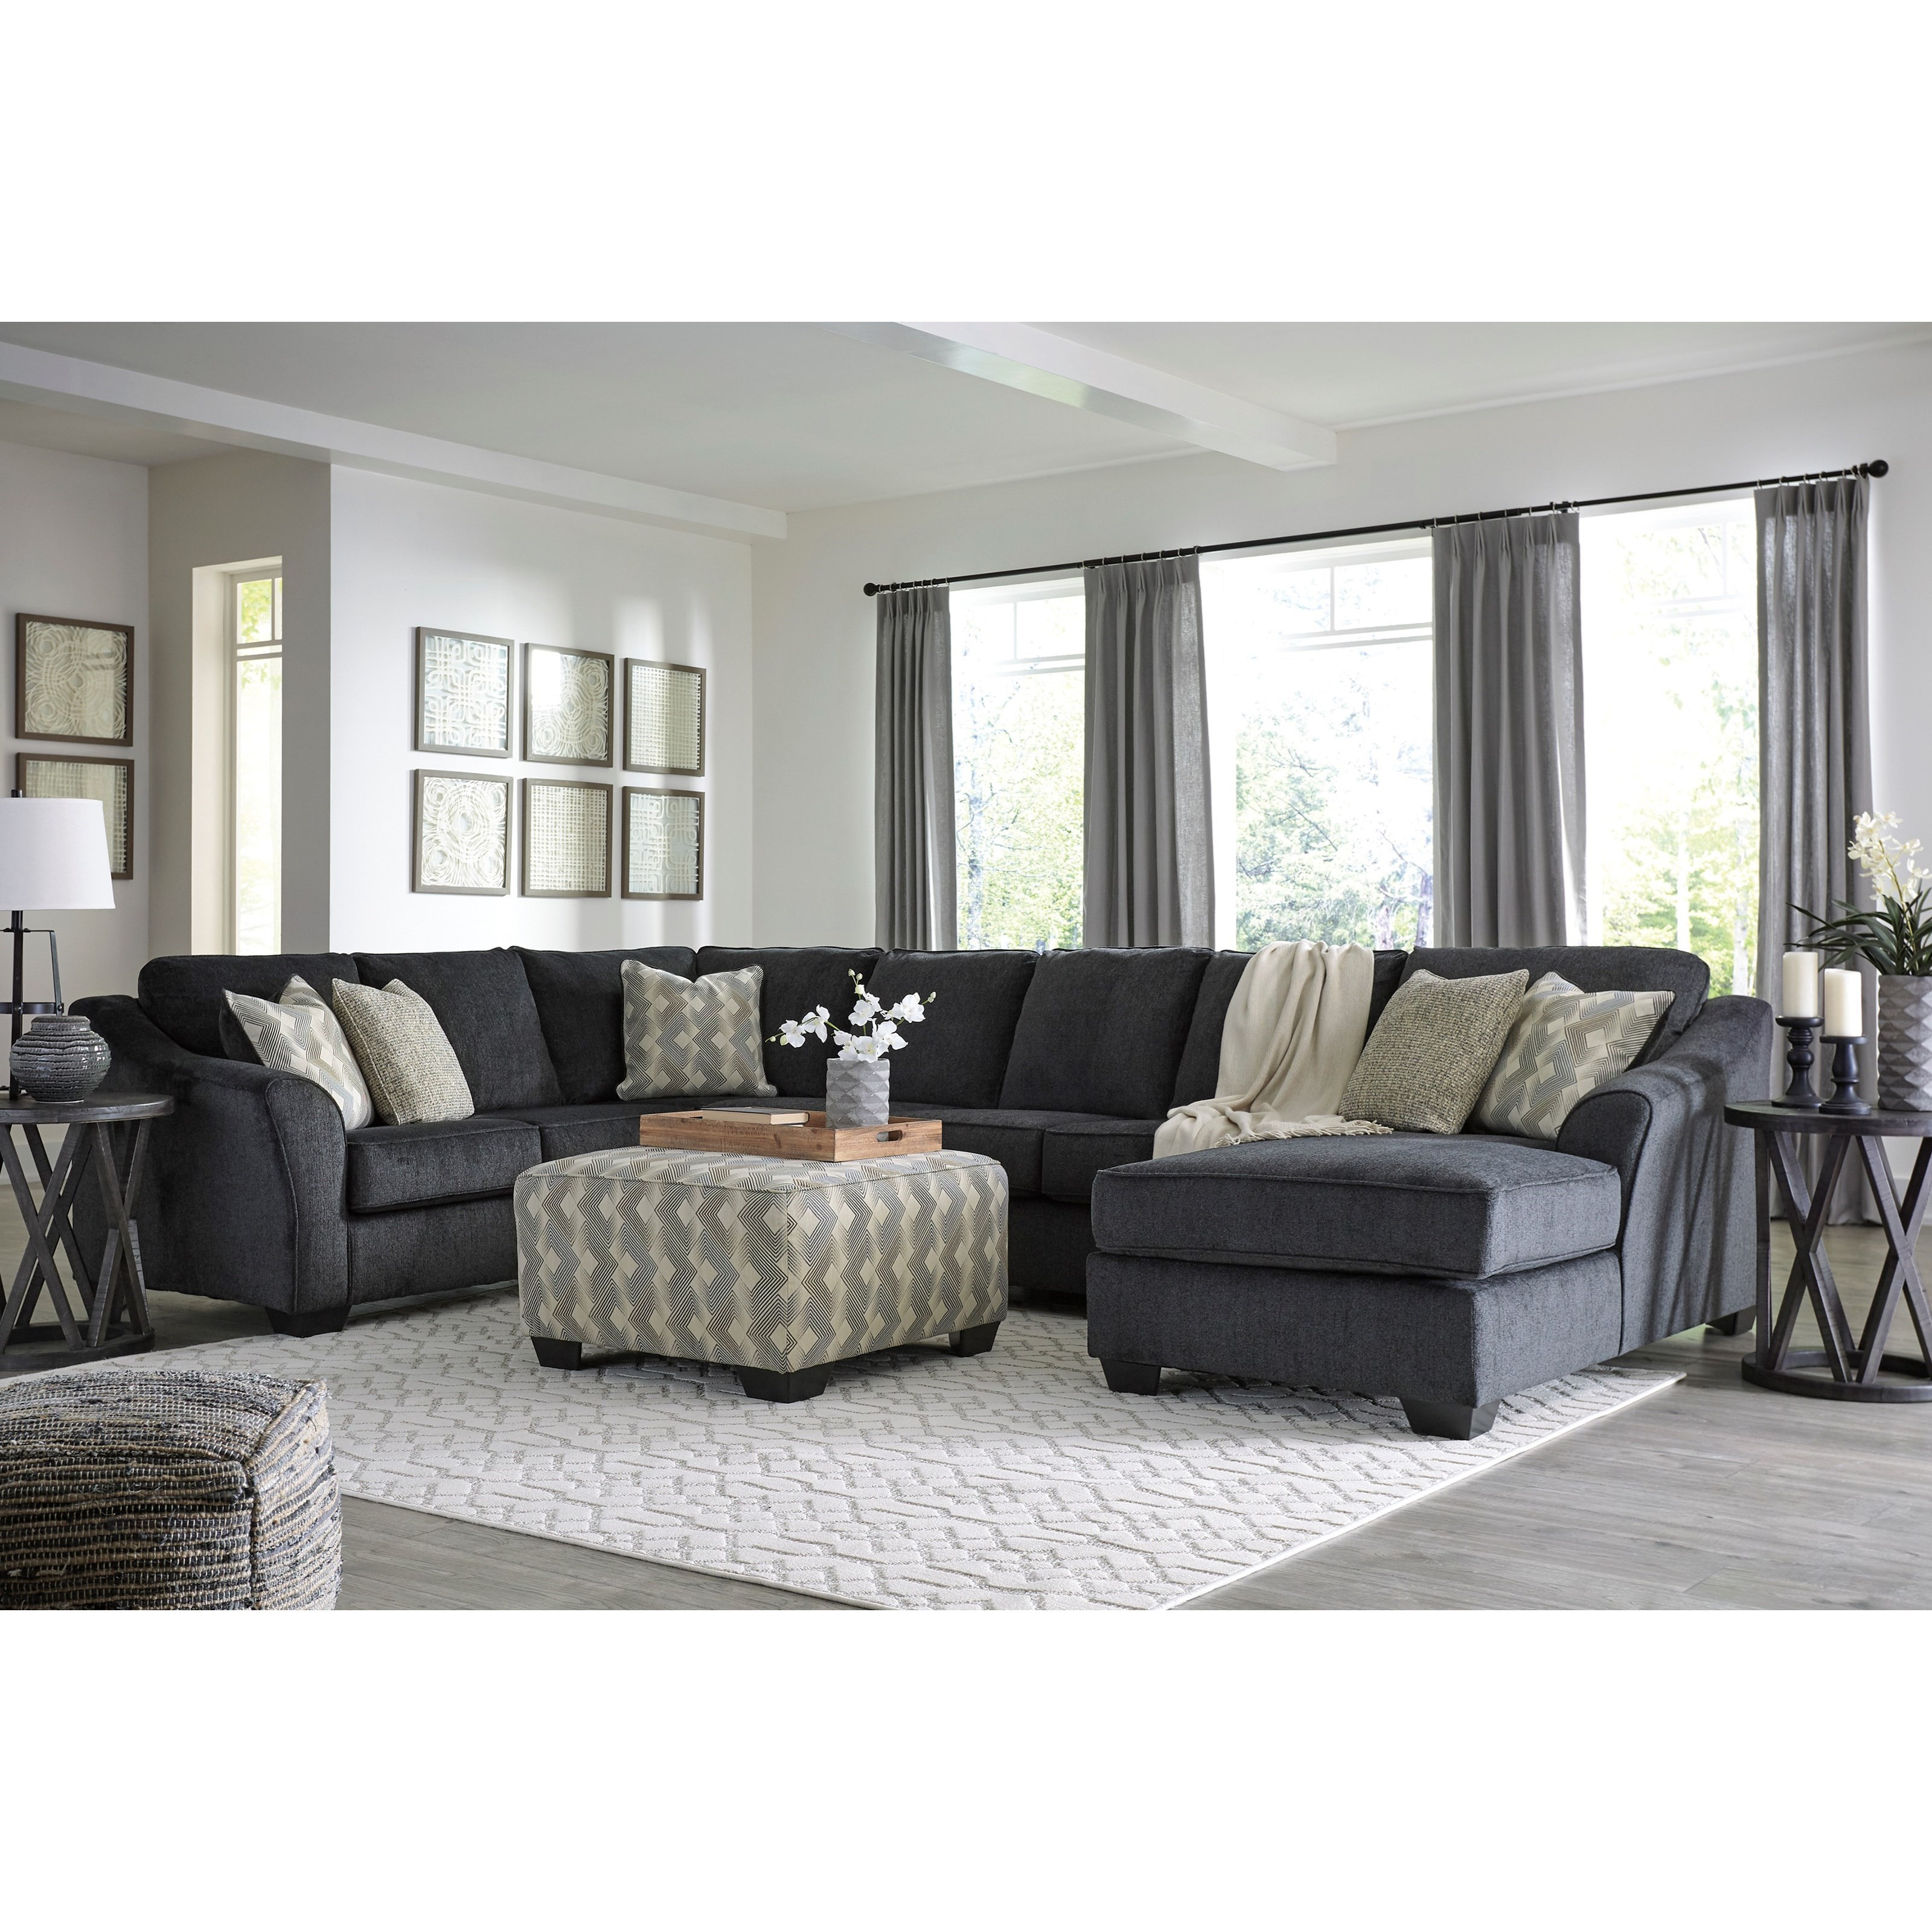 Eltmann 4 Piece Sectional With Chaise: Ashley (Signature Design) Eltmann 4 Piece Sectional With